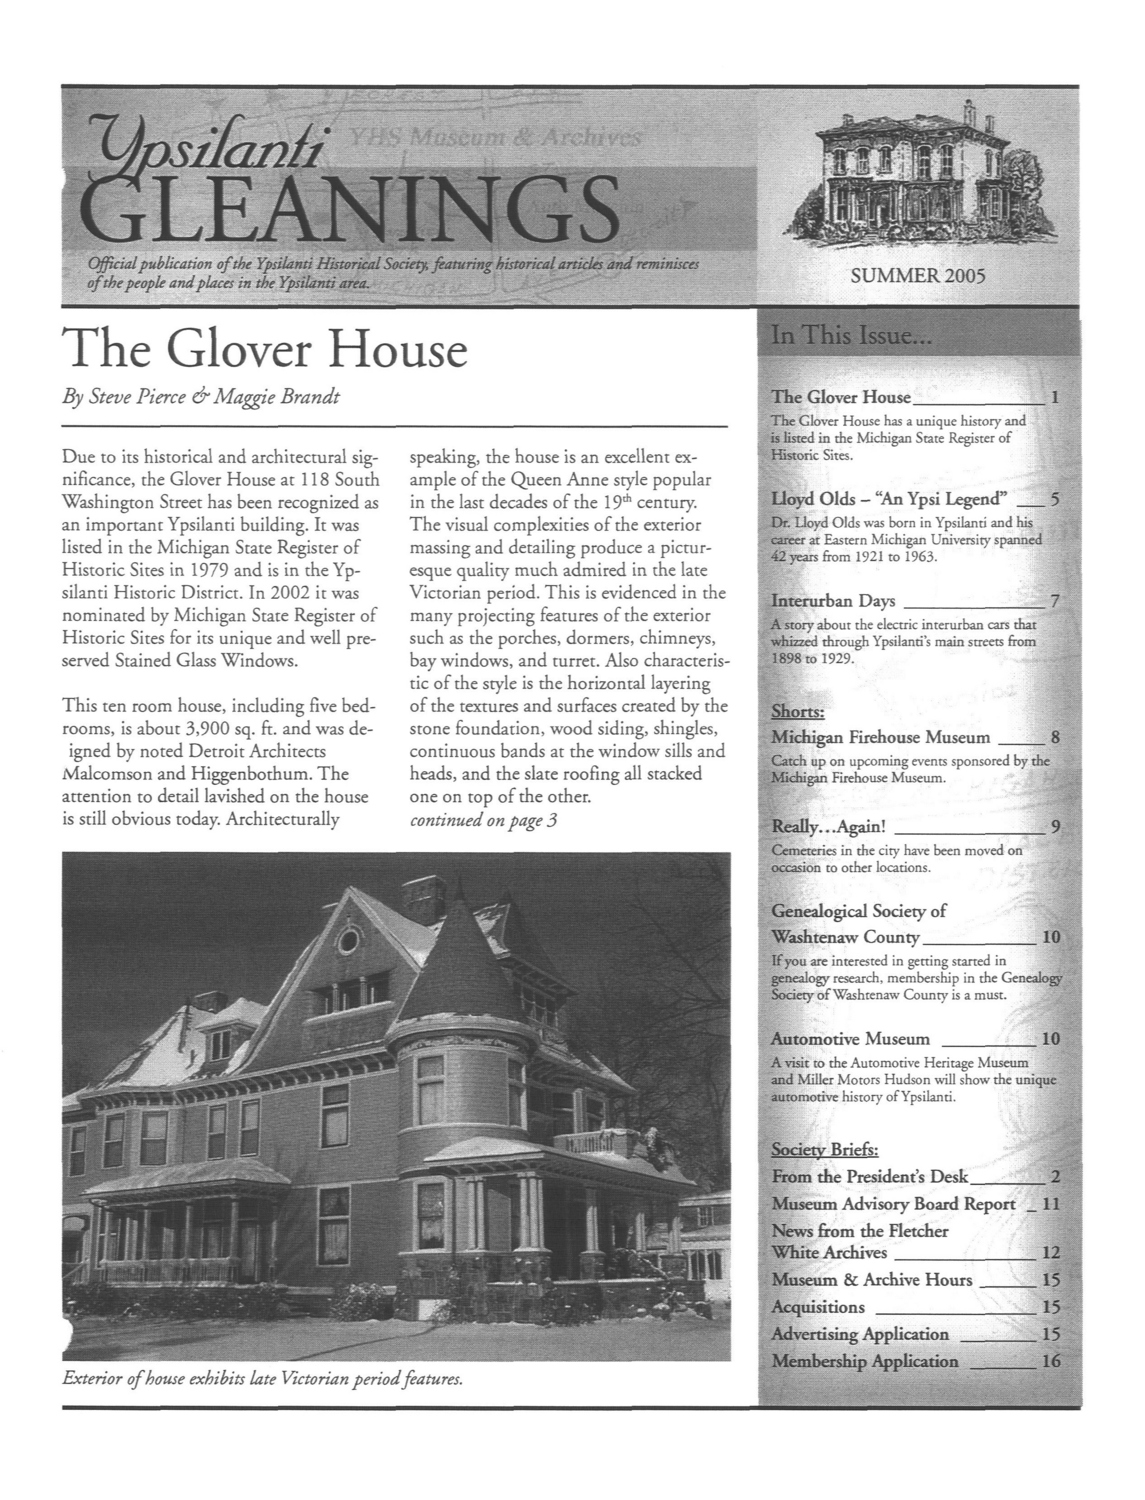 The Glover House image